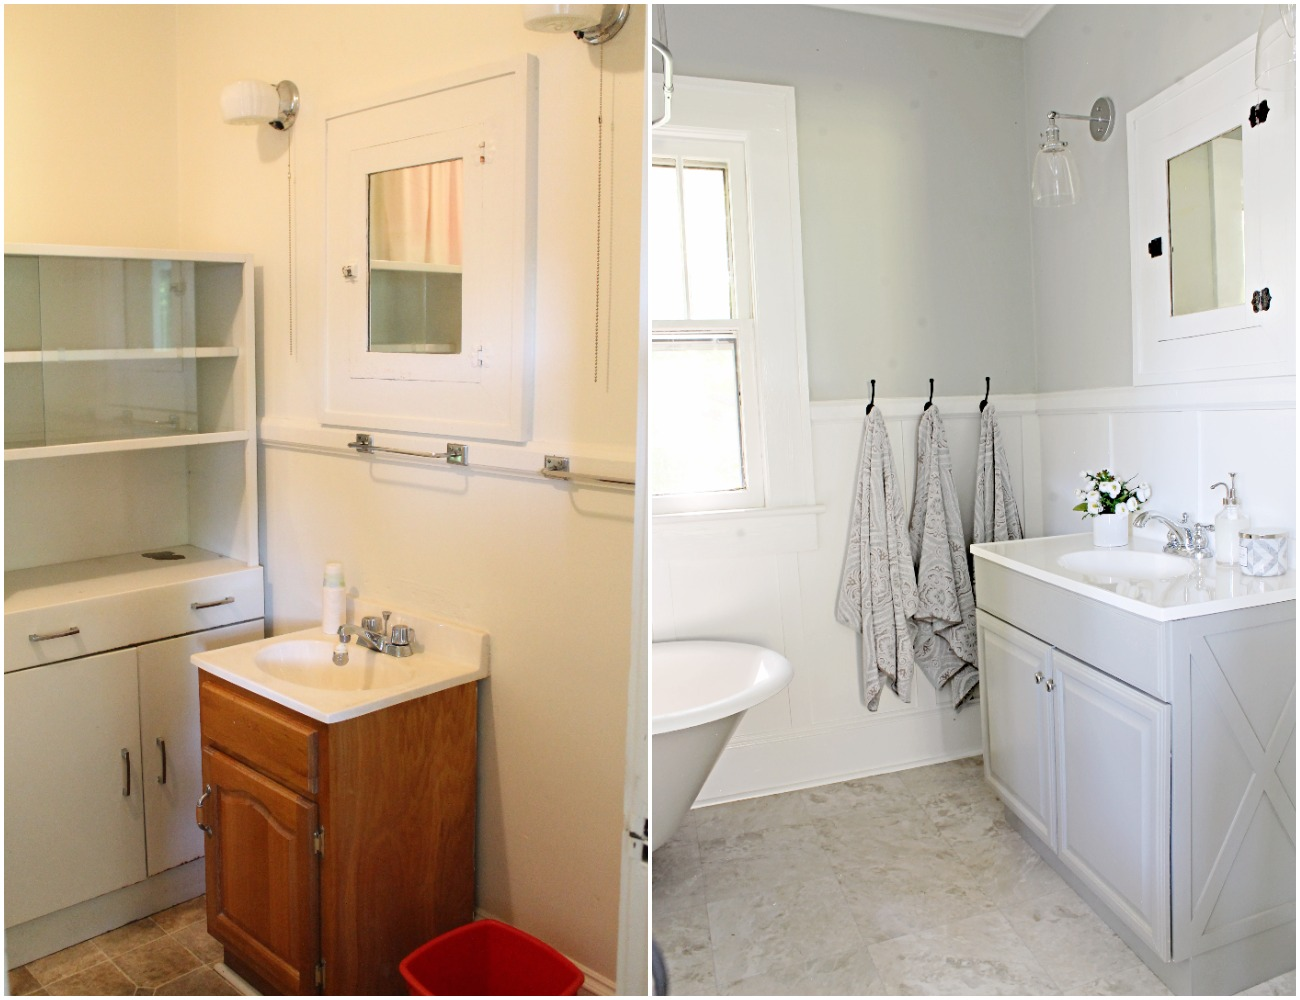 House Flipping Before and After - DIY BUDGET BATHROOM IDEAS (1).jpg